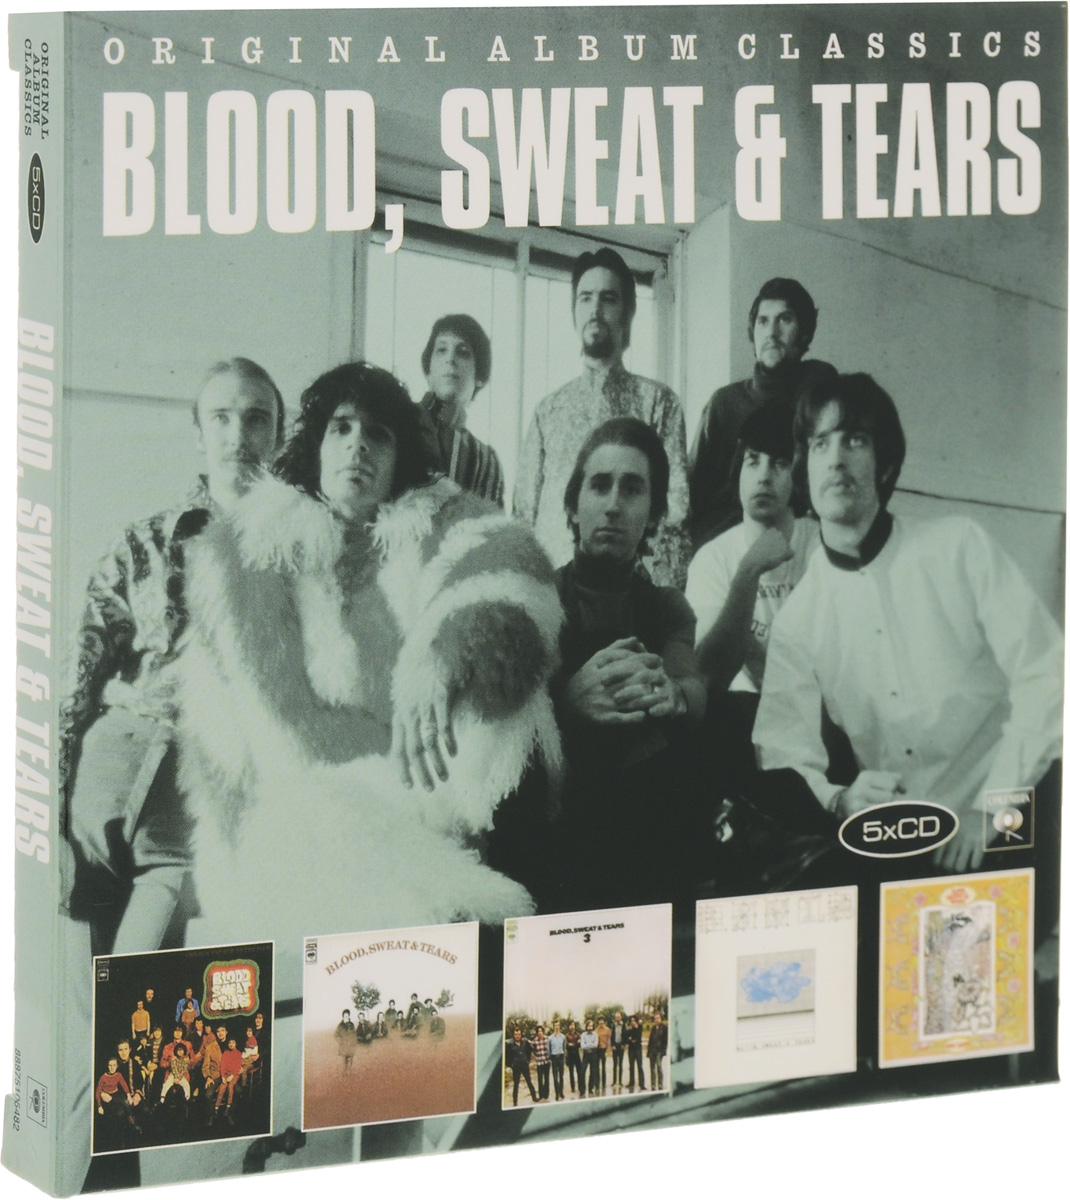 Blood, Sweat & Tears Blood, Sweat & Tears. Original Album Classics (5 СD) blood sweat and tears live in halifax